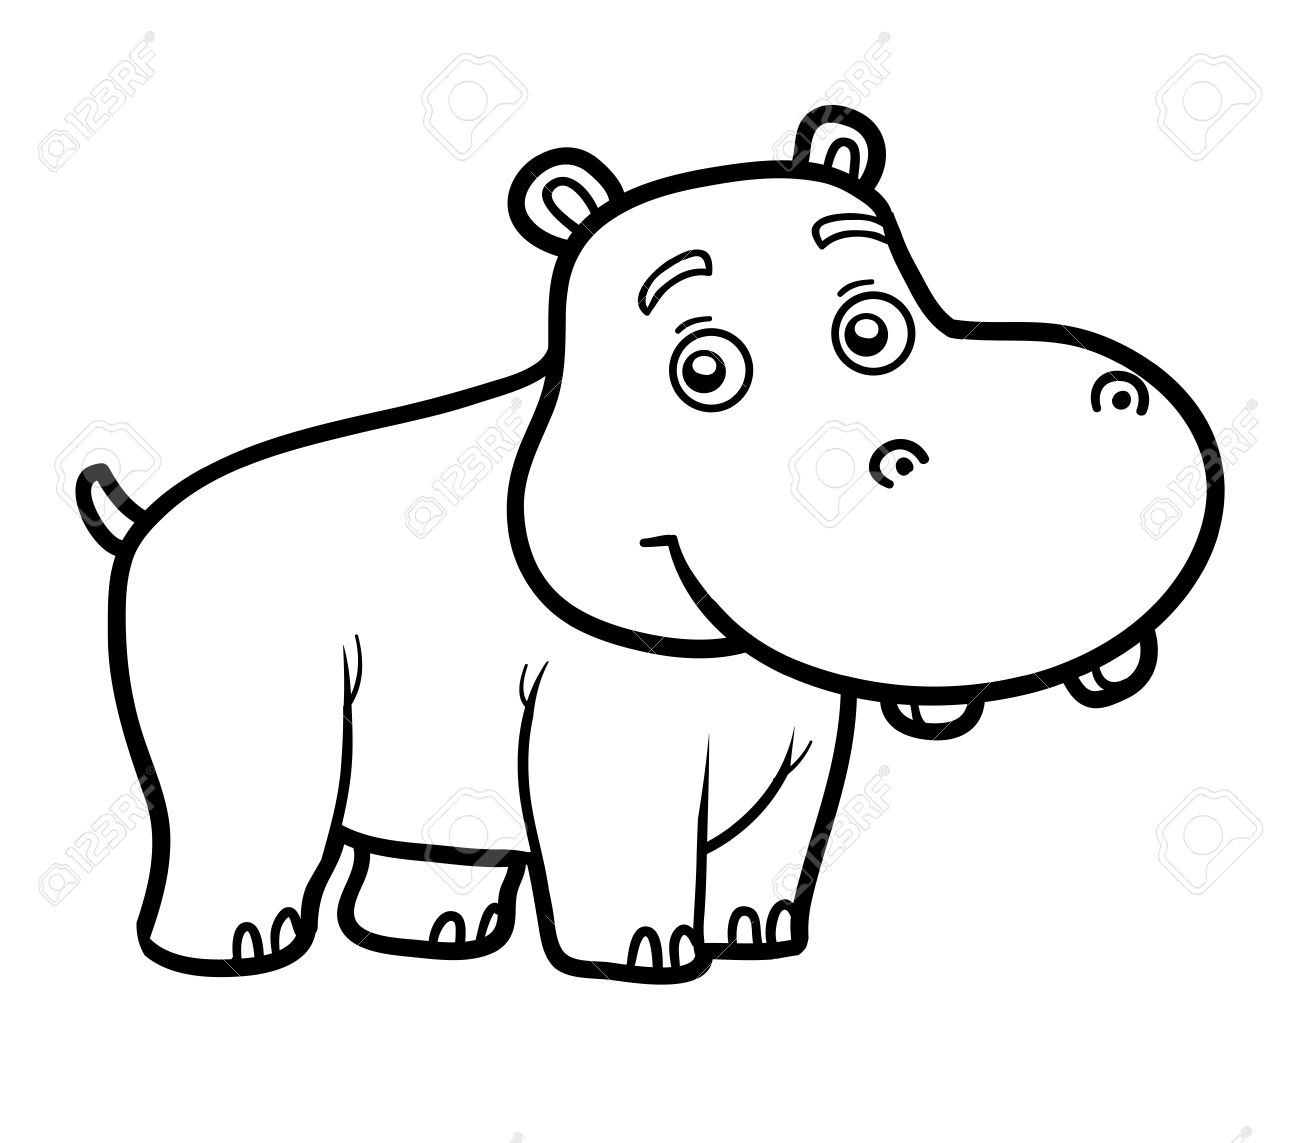 coloring book for children coloring page with little hippo stock vector 57730767 - Children Coloring Pictures